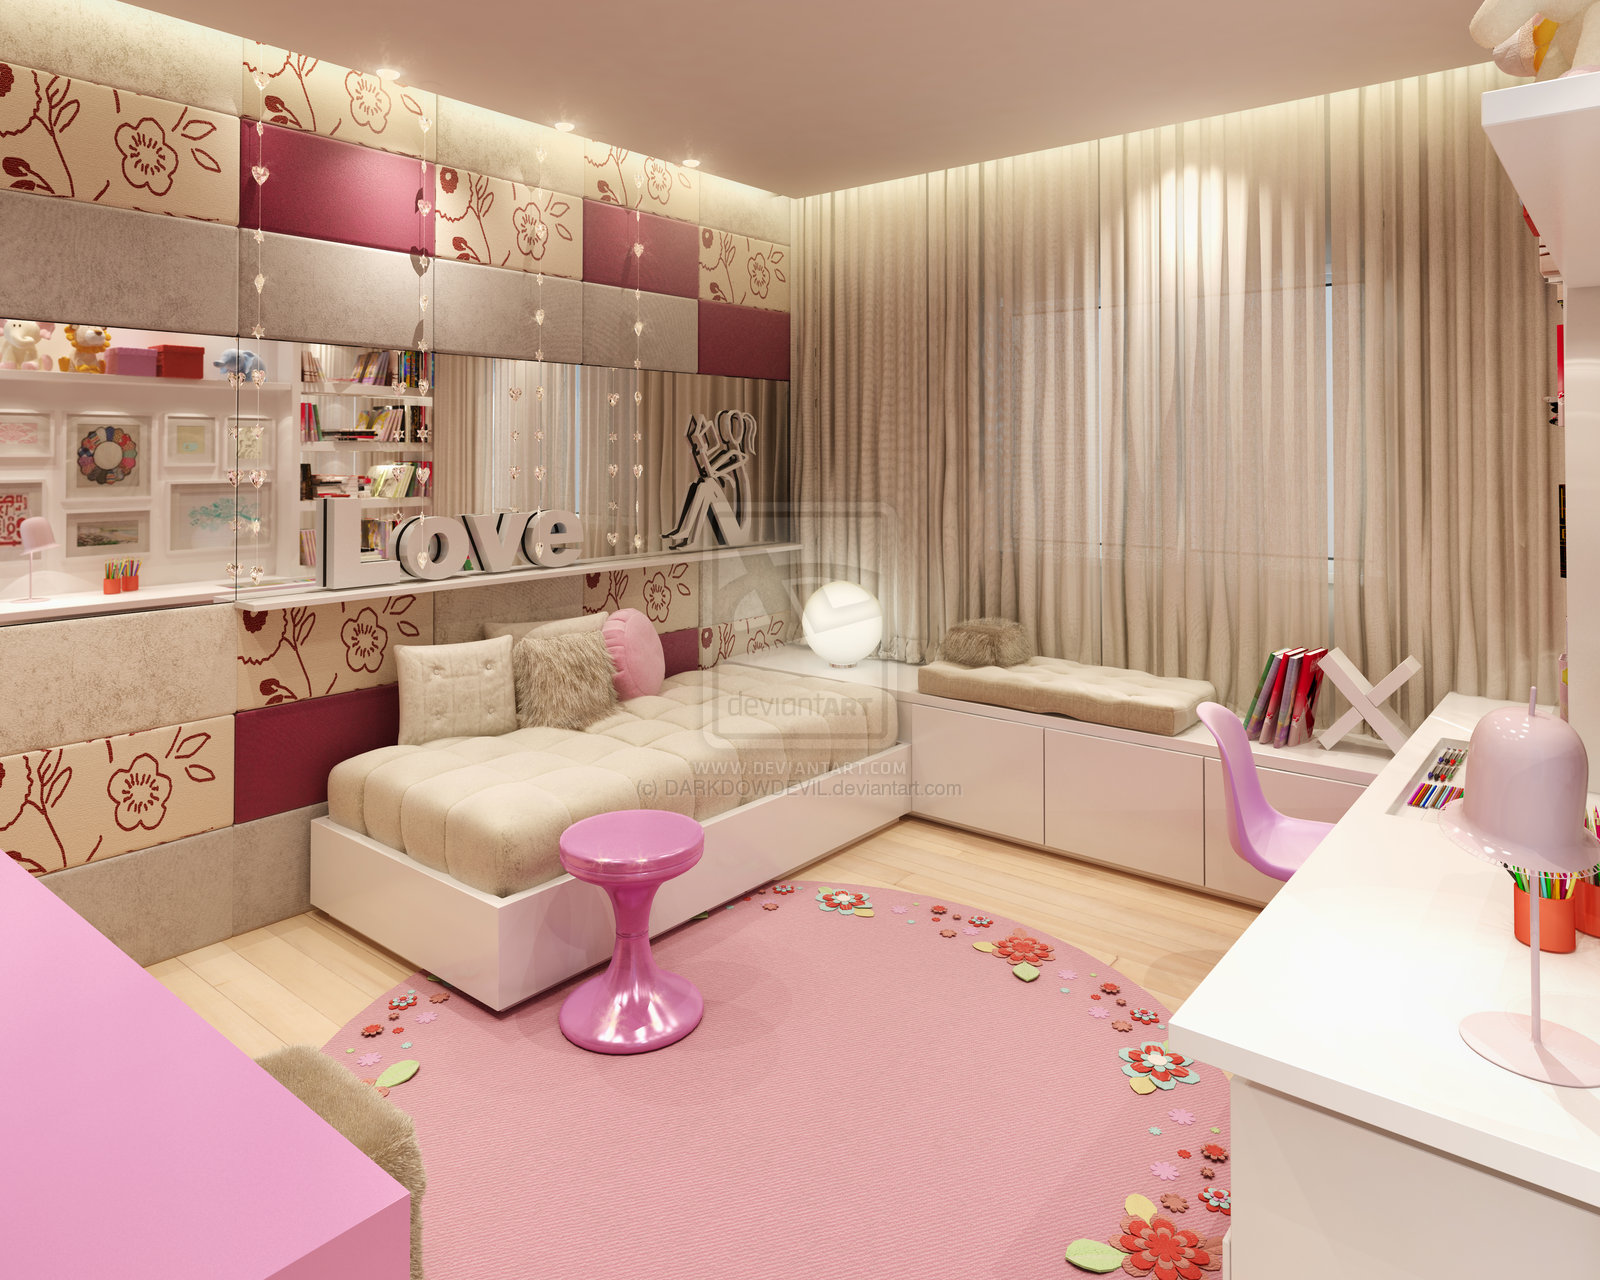 Girly bedroom design ideas wonderful for Girls room decor